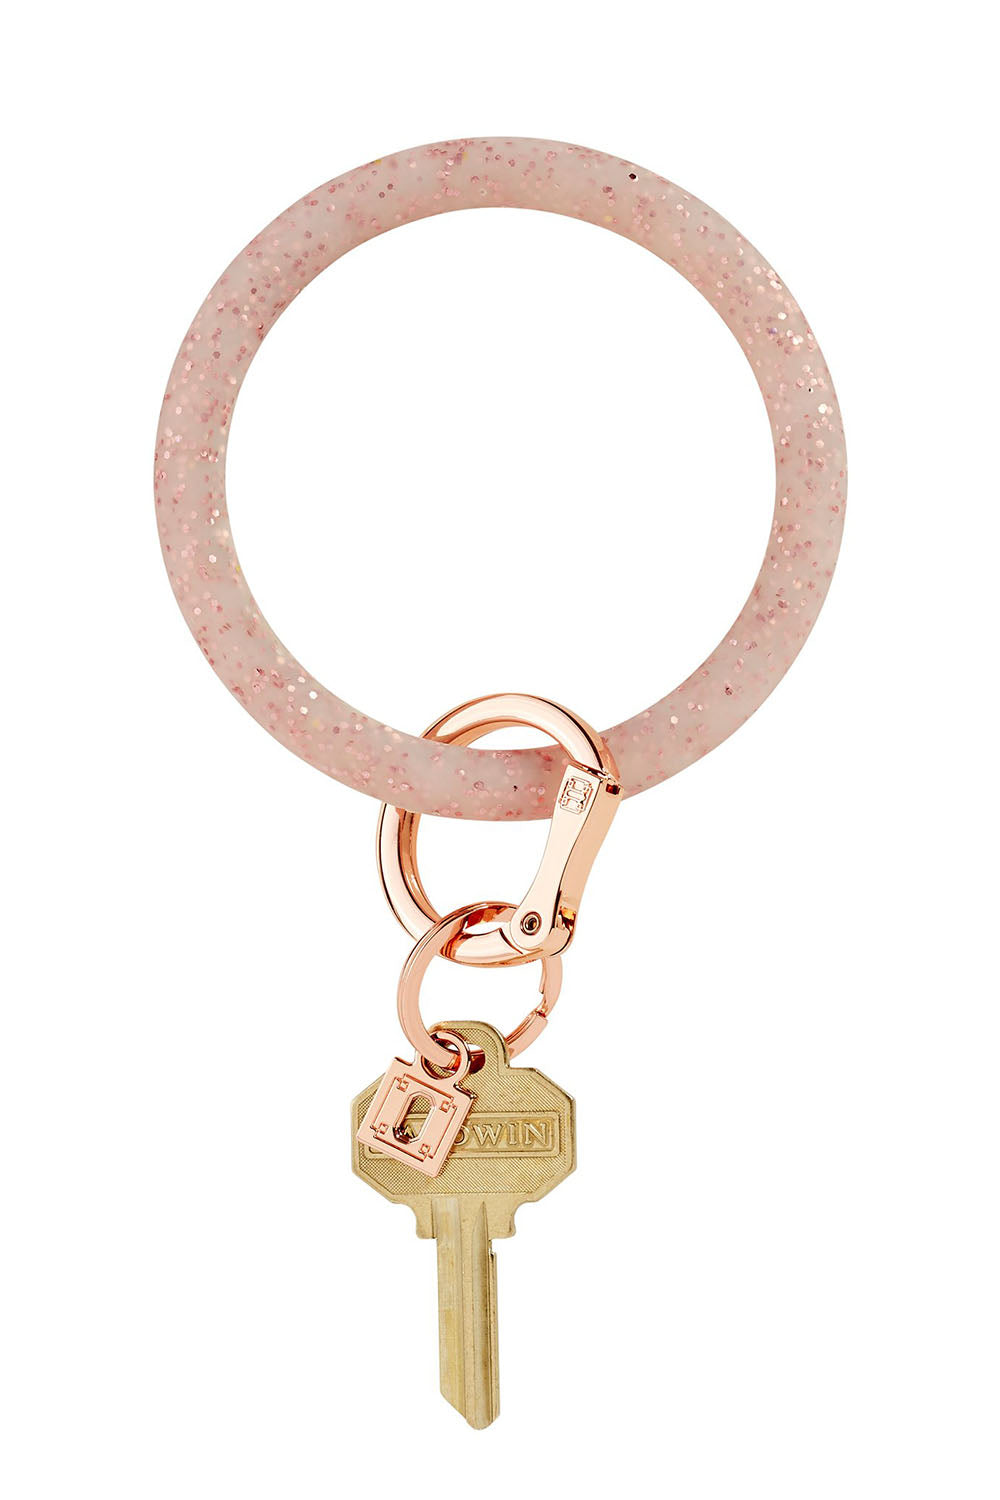 The BIG O Key Ring *Silicone* - Rose Gold Confetti